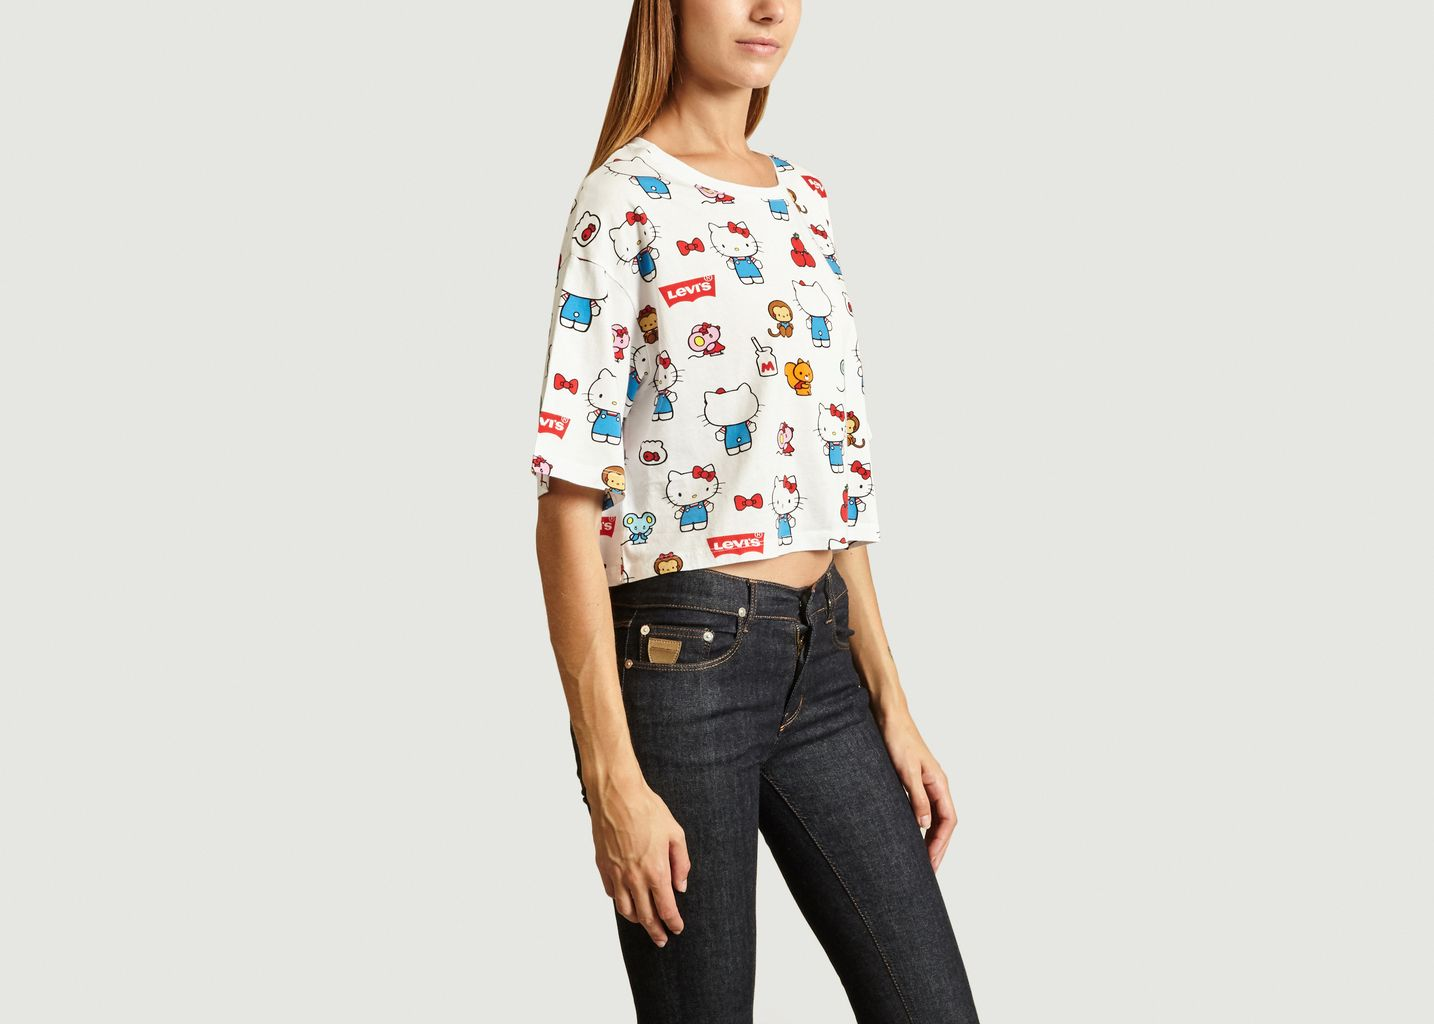 T-shirt Graphic Oversize - Levi's Red Tab